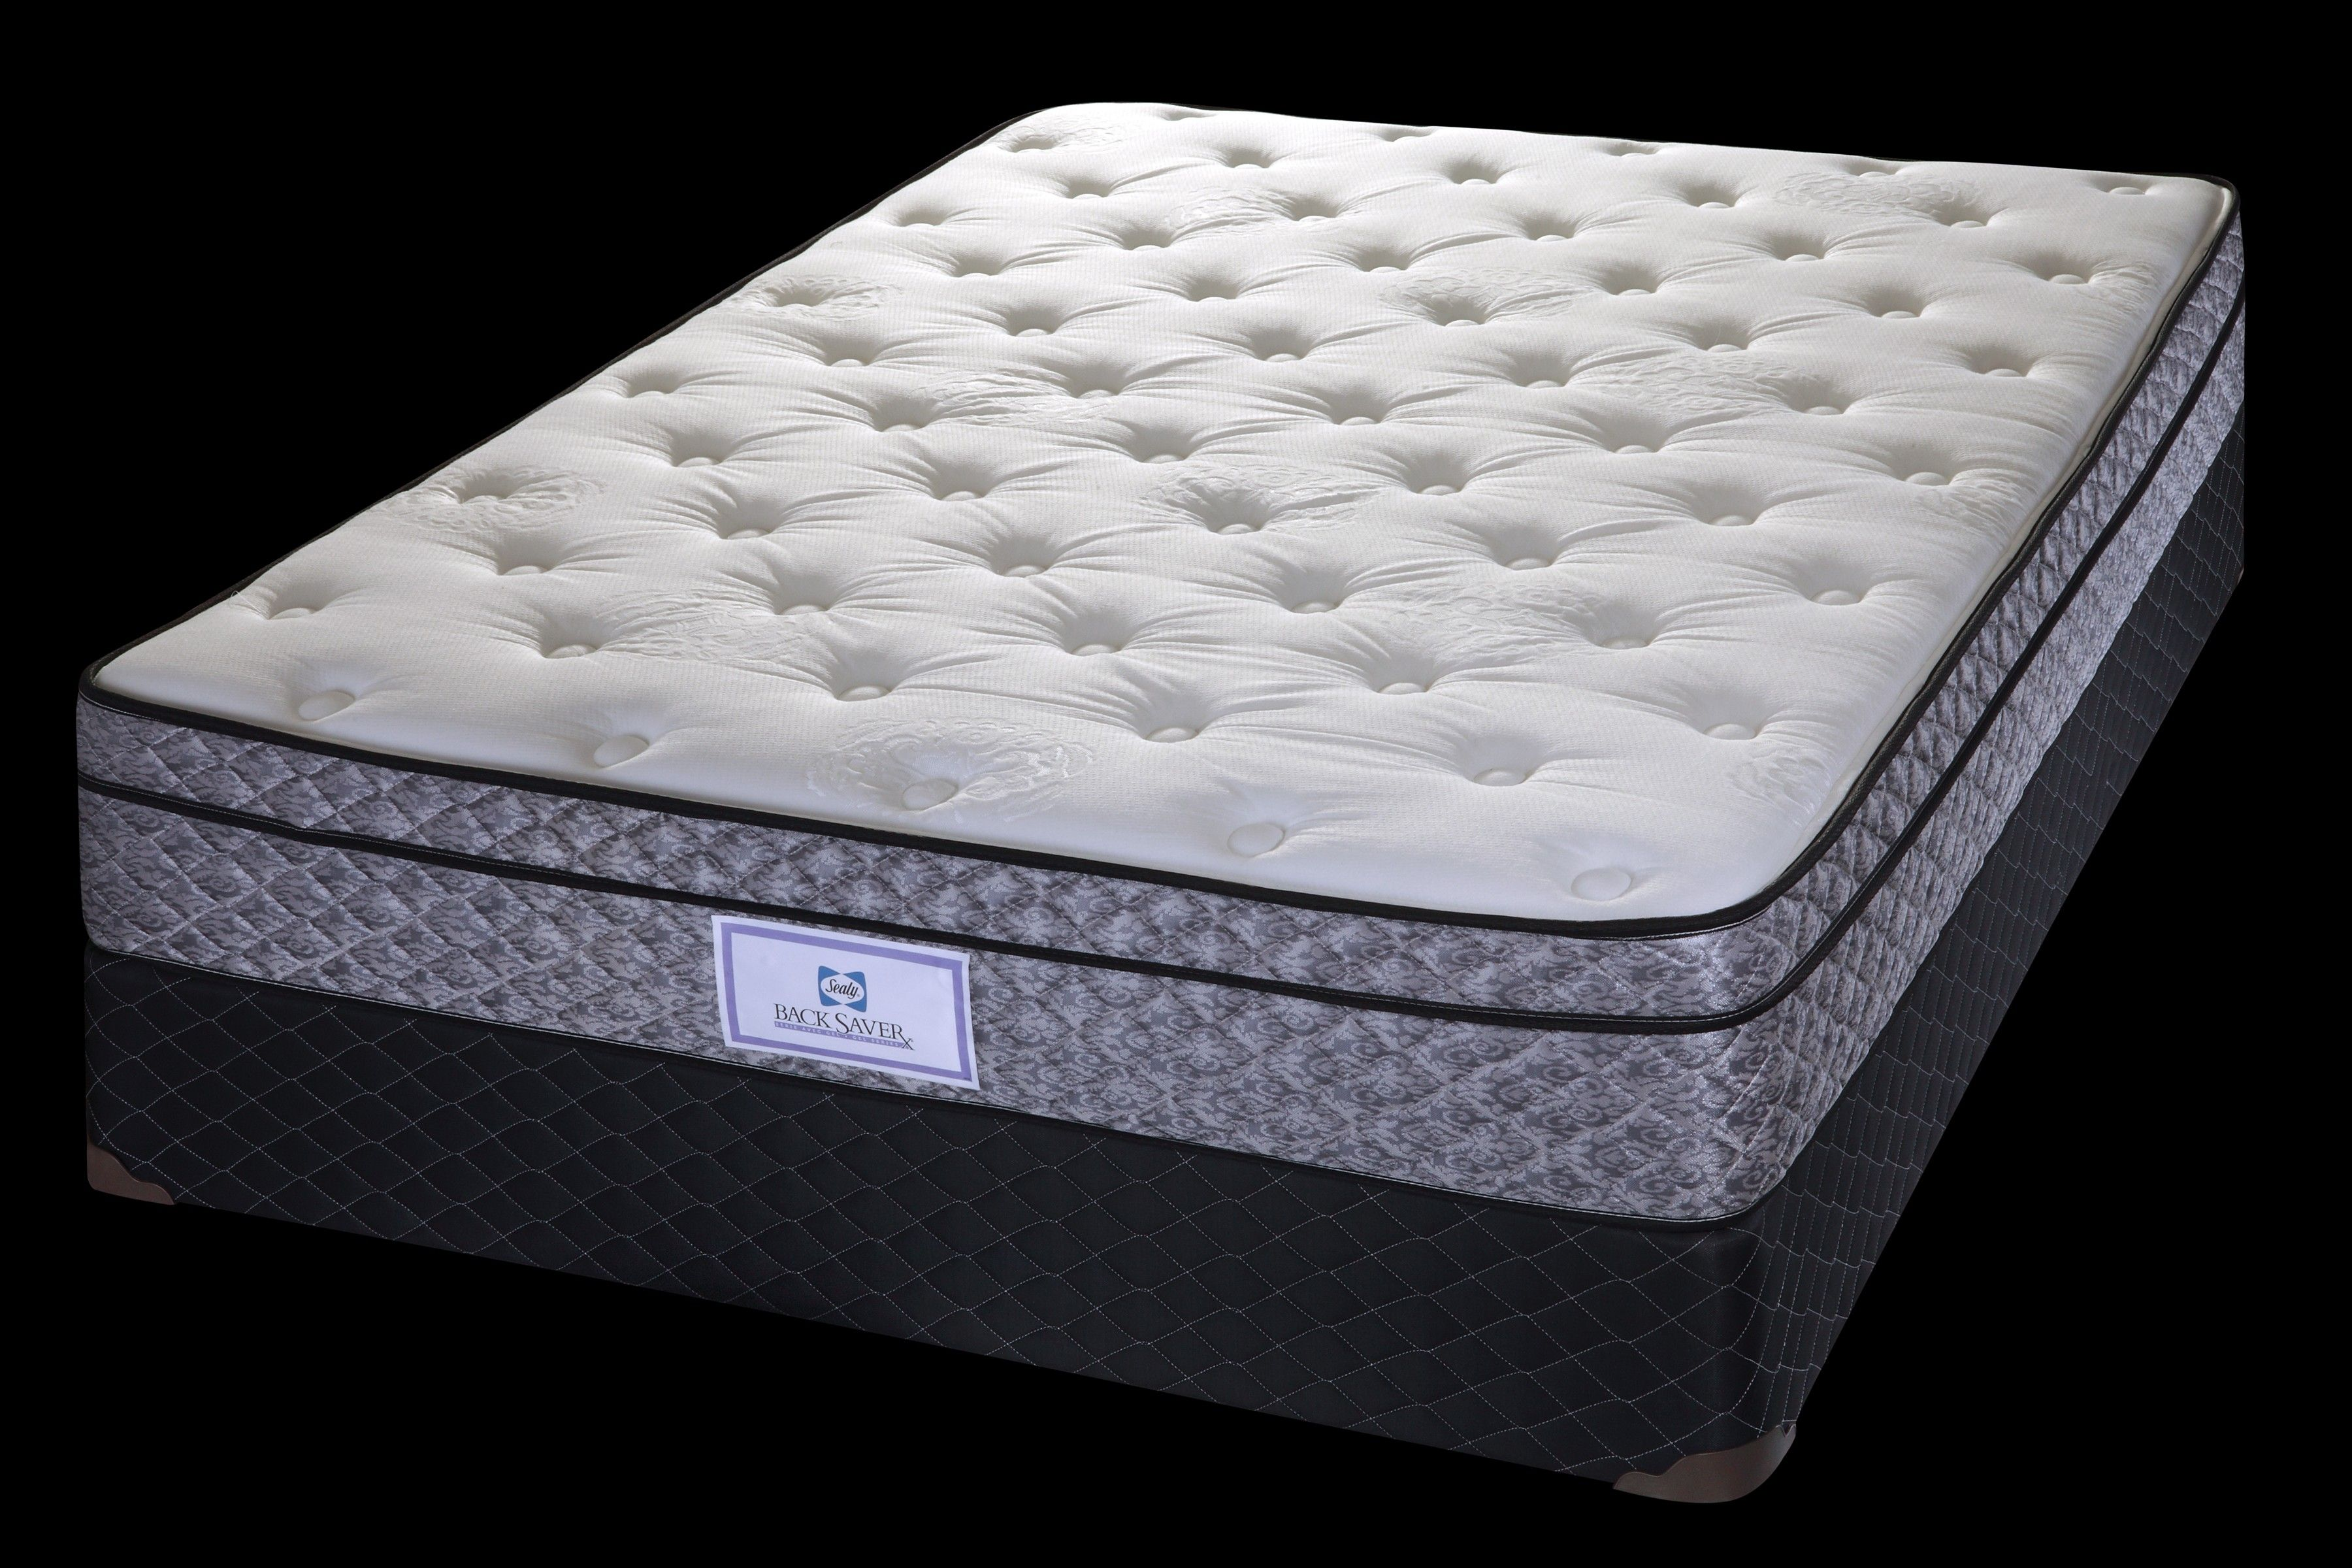 mattress tube flow waterbed wayfair brand us name free watermattress default bnd